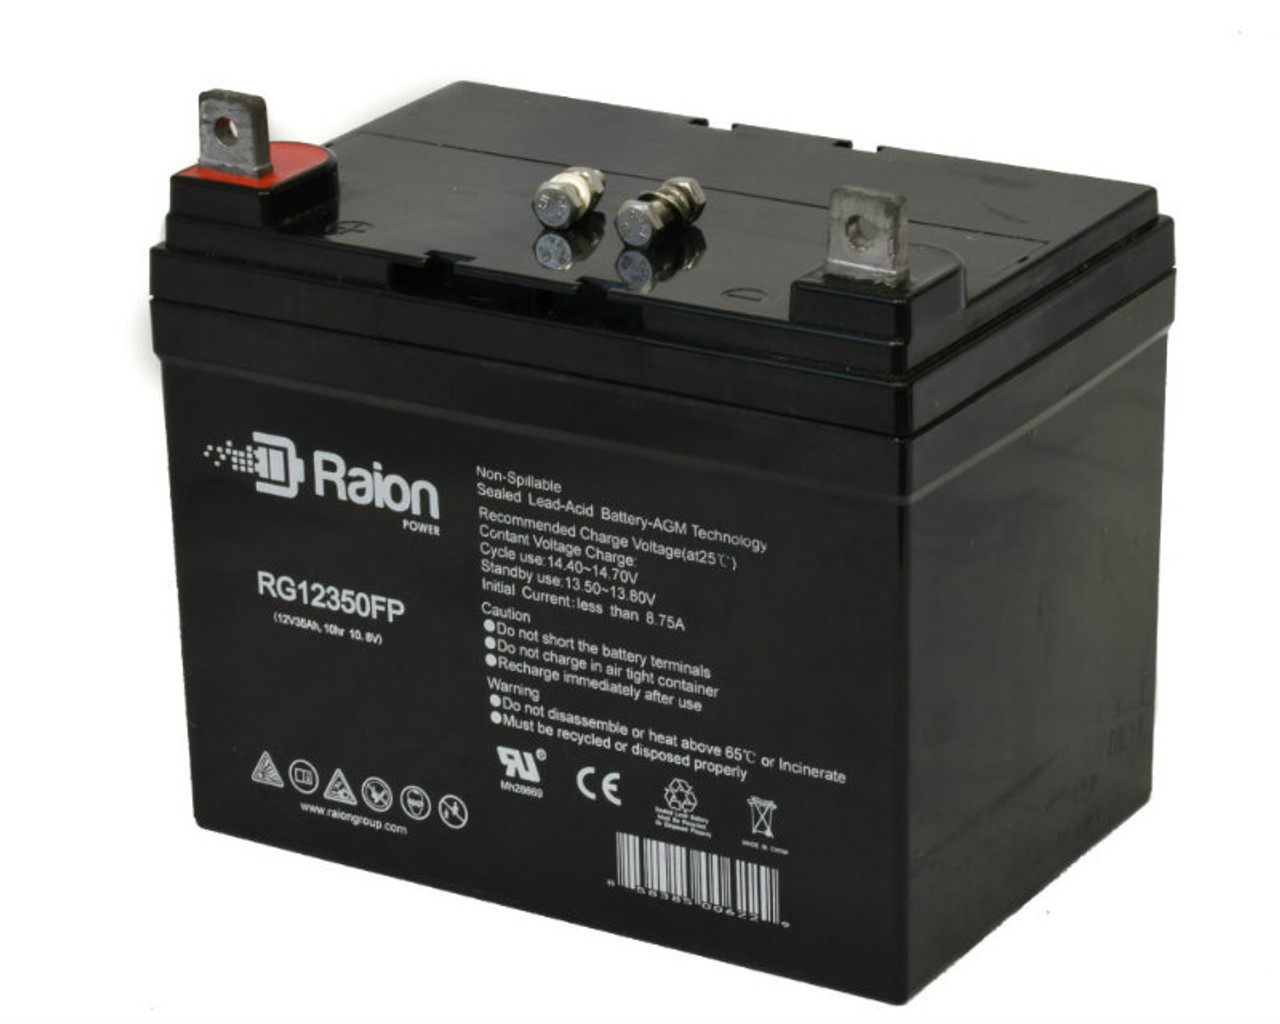 Raion Power RG12350FP Replacement Wheelchair Battery For CTM HS-686 (1 Pack)